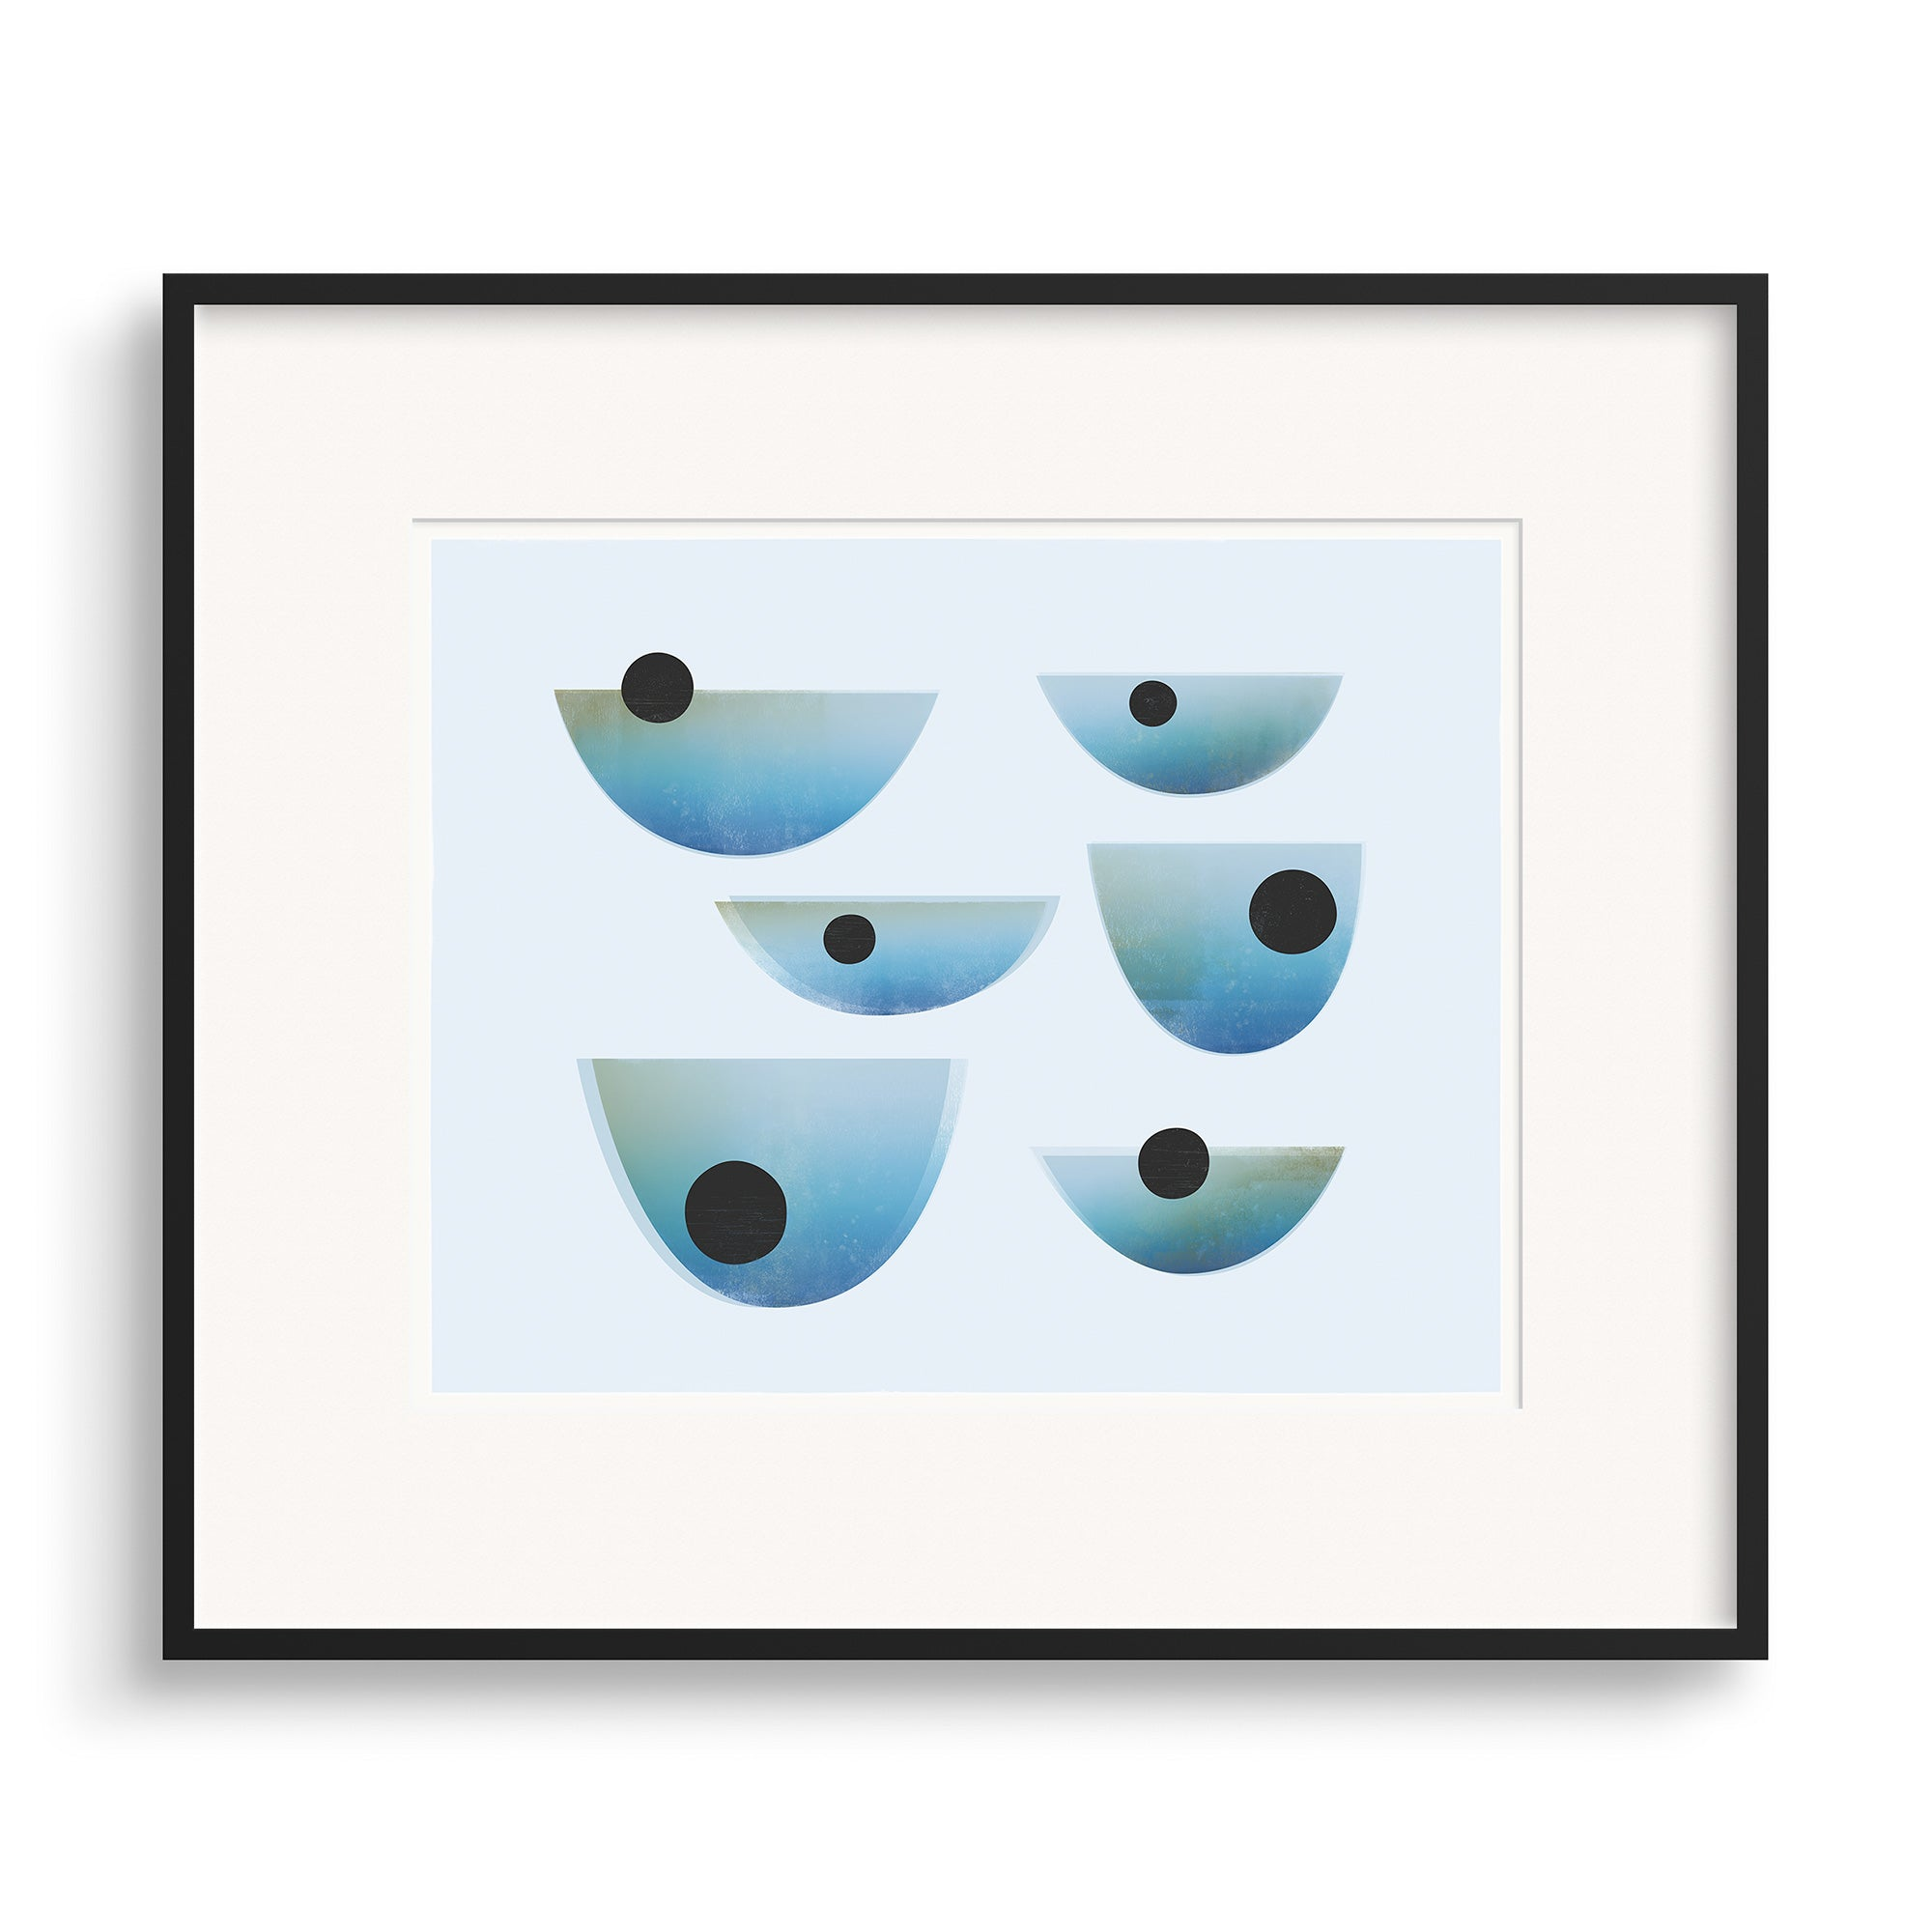 Black framed image of Drift Print by Janet Taylor | Household Art.